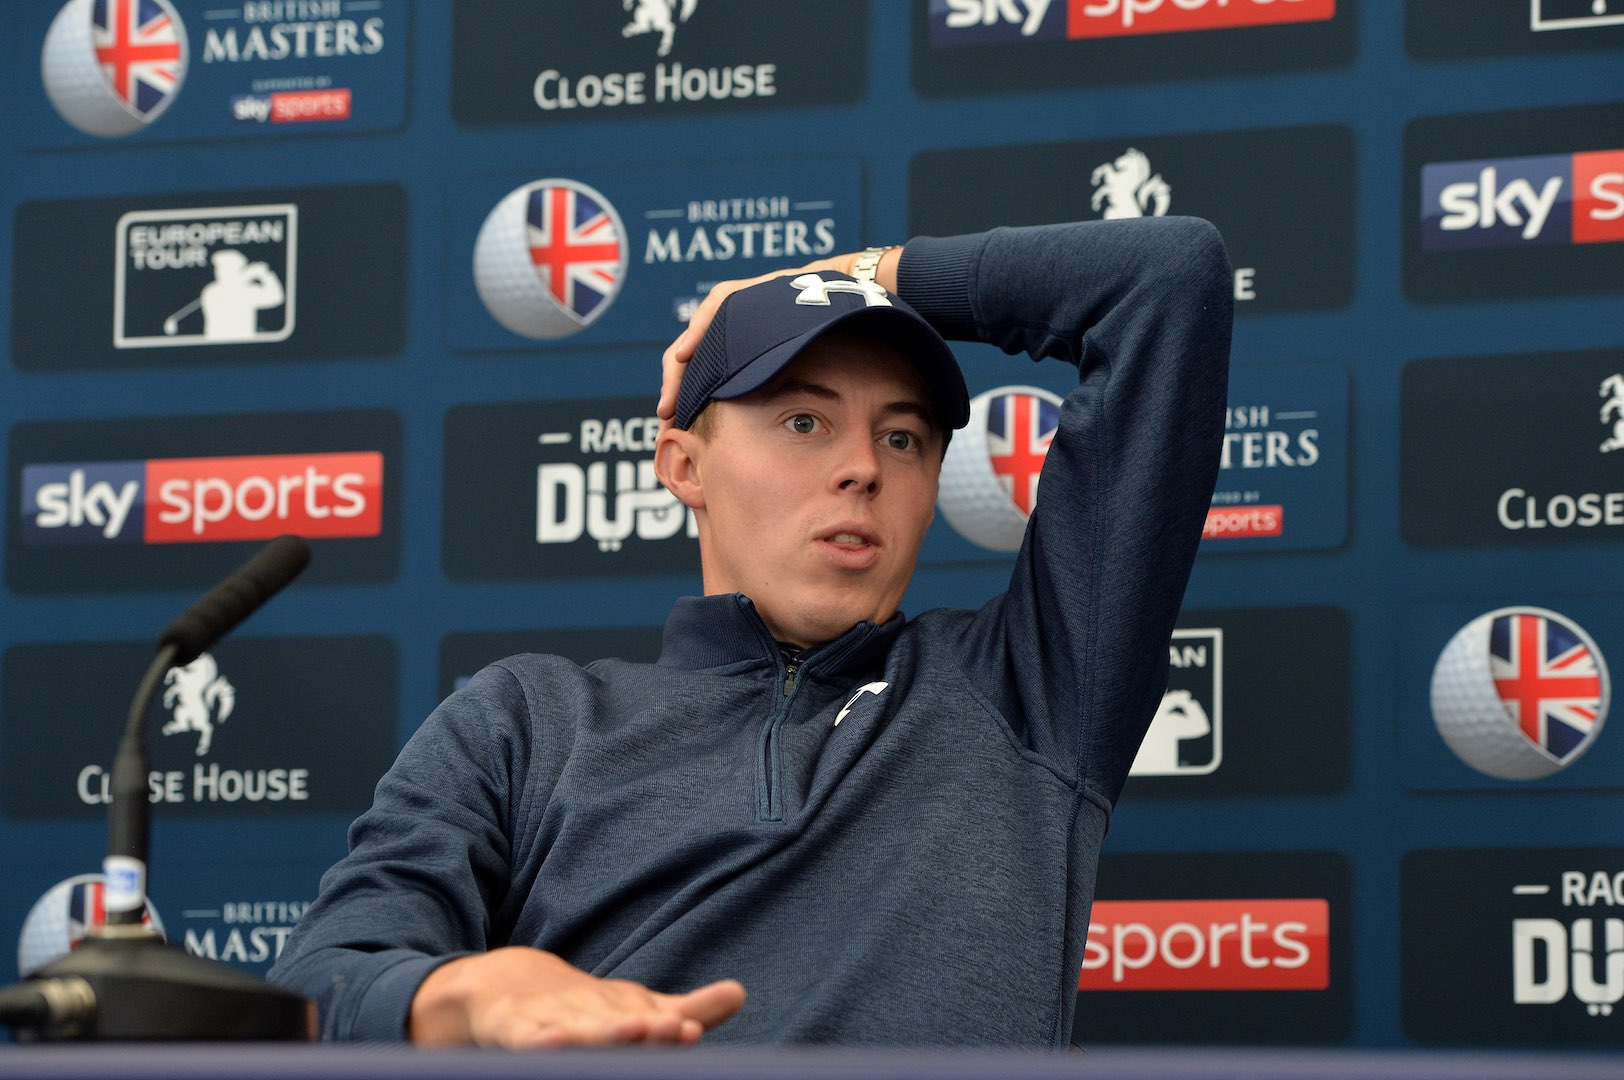 Paul Dunne Holds Off Rory McIlroy To Win The British Masters